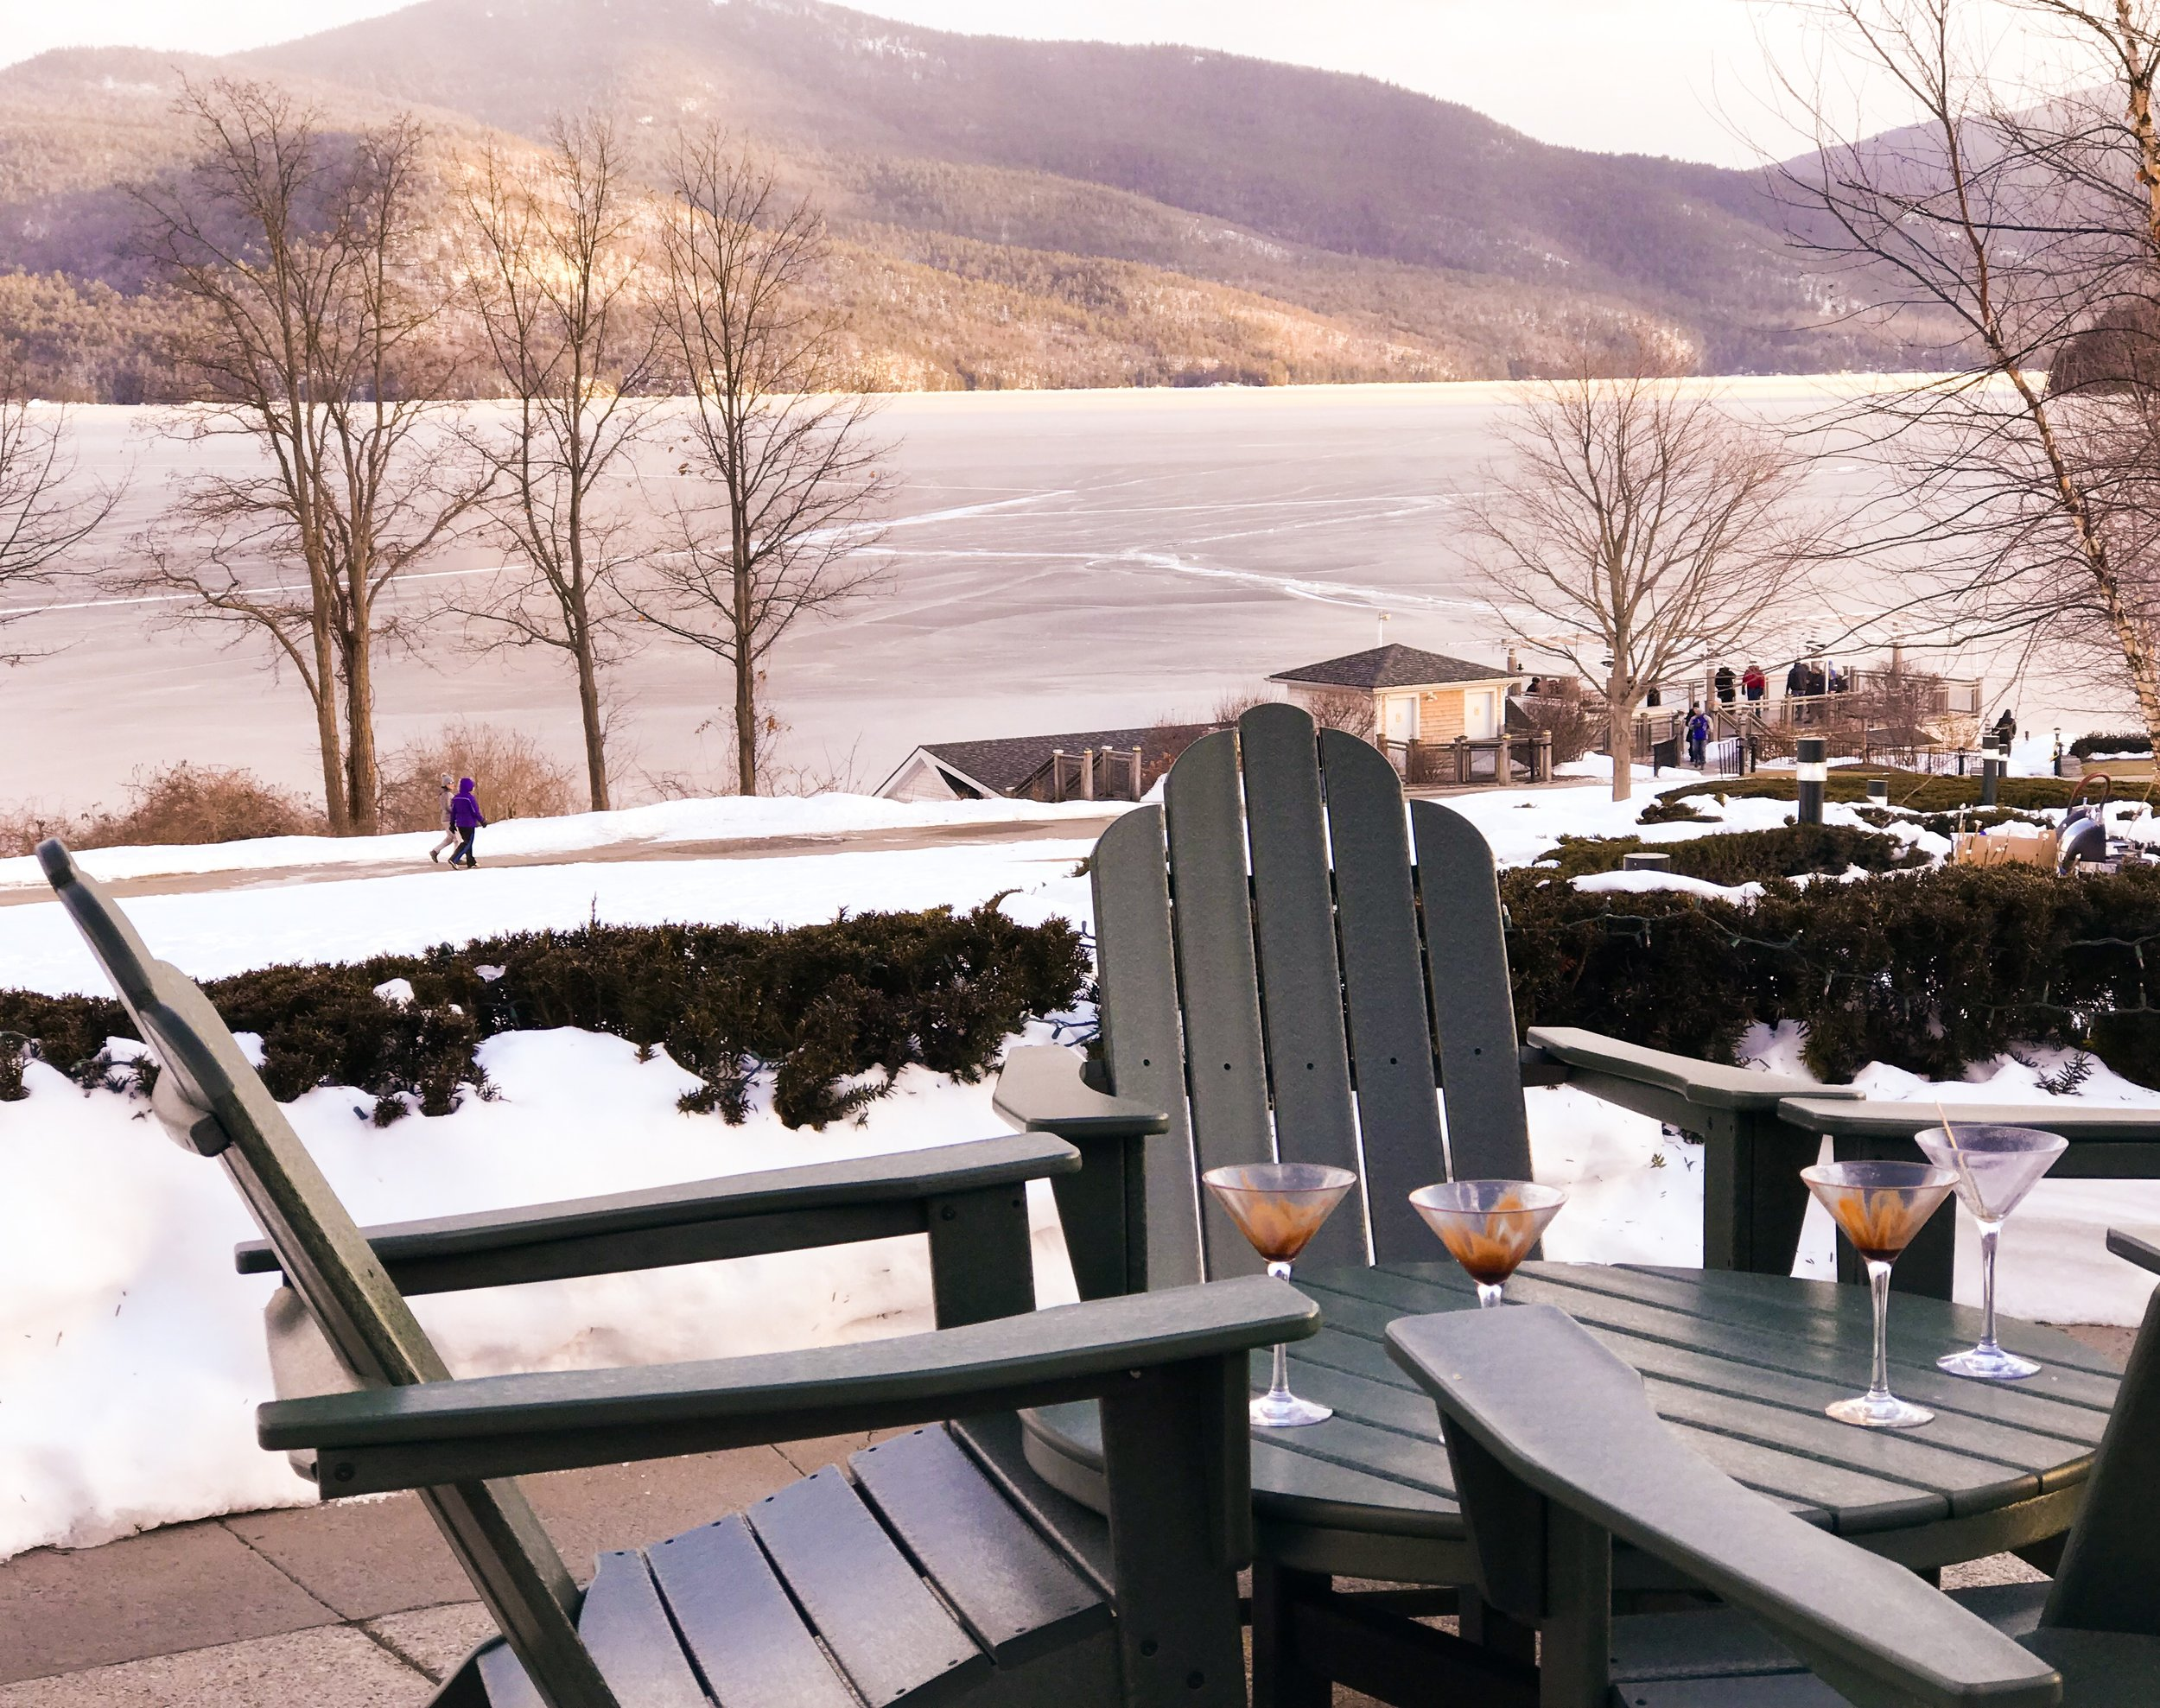 View of Lake George, frozen over. c. January 2019